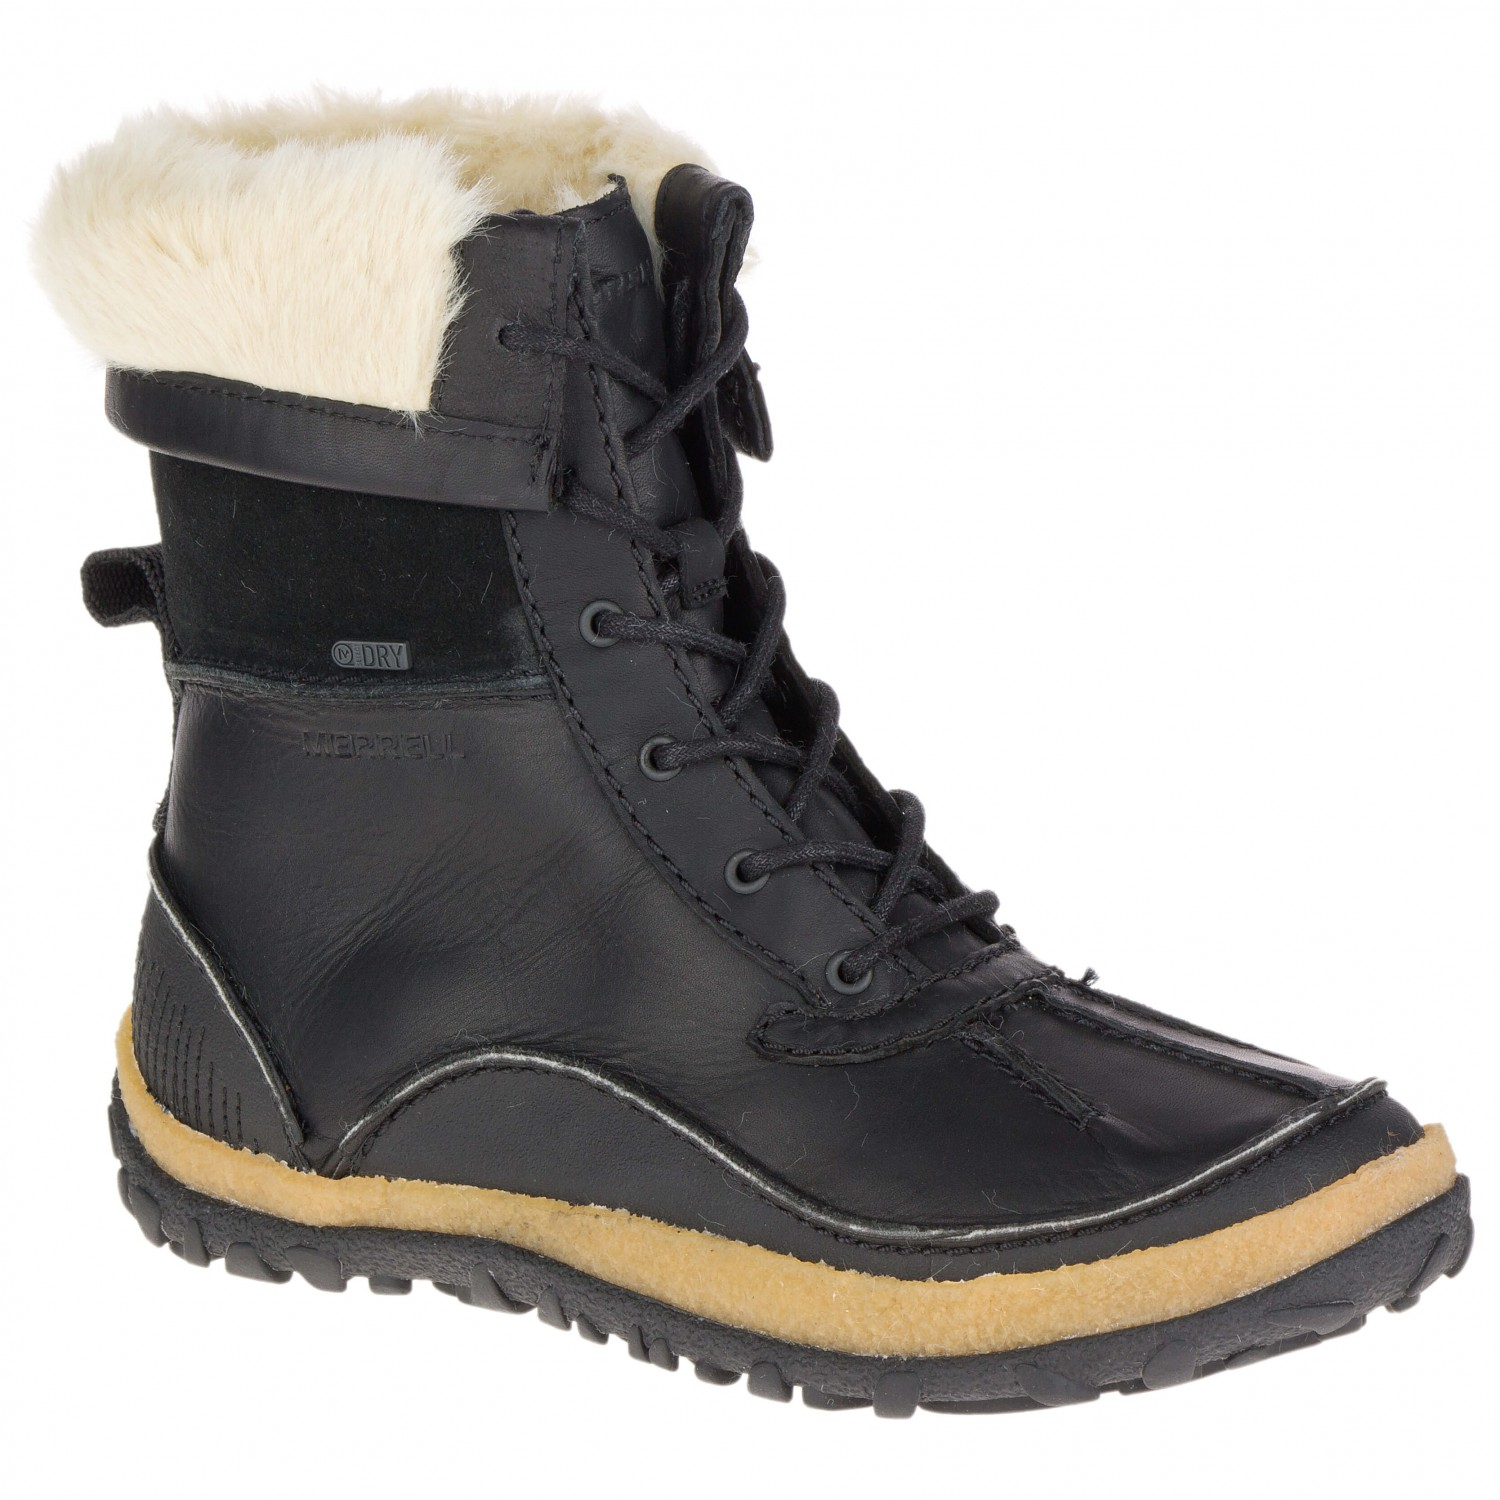 lower price with best sell most popular Merrell Tremblant Mid Polar Waterproof - Winter boots Women's ...